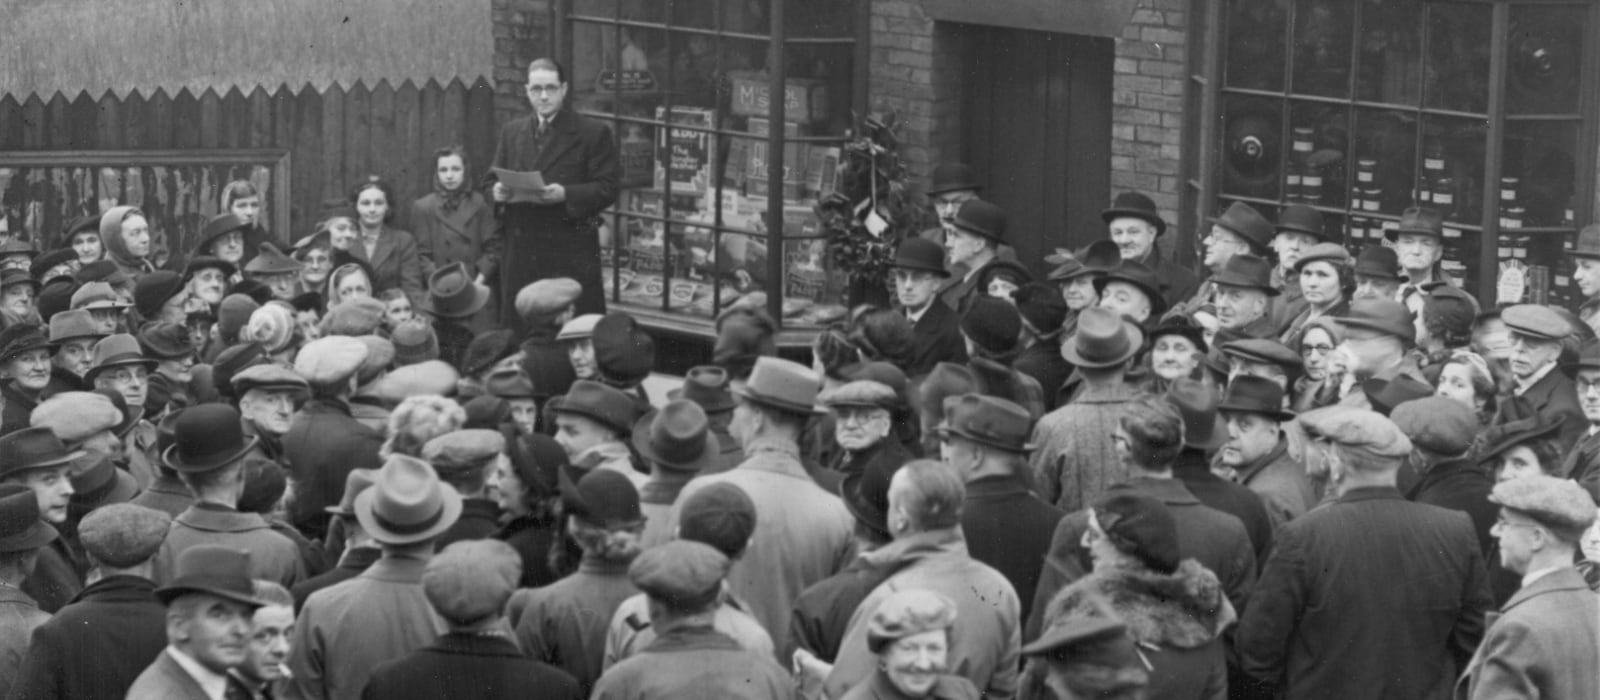 Black and white image of crowds outside number 31 Toad Lane in the 1940s.